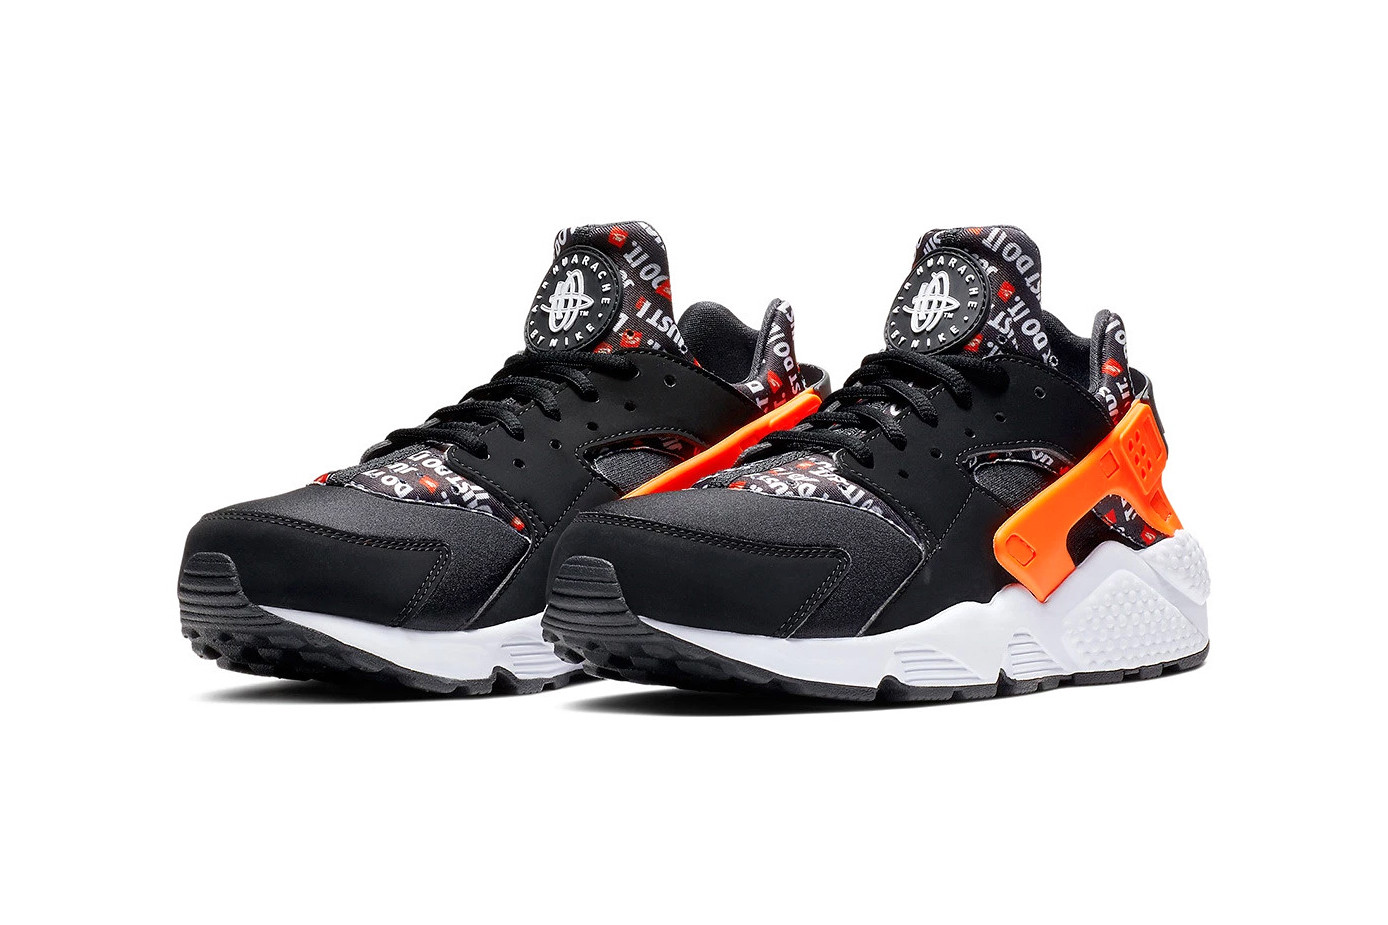 d339379fed5e9d nike air huarache men 2018 lookbook black